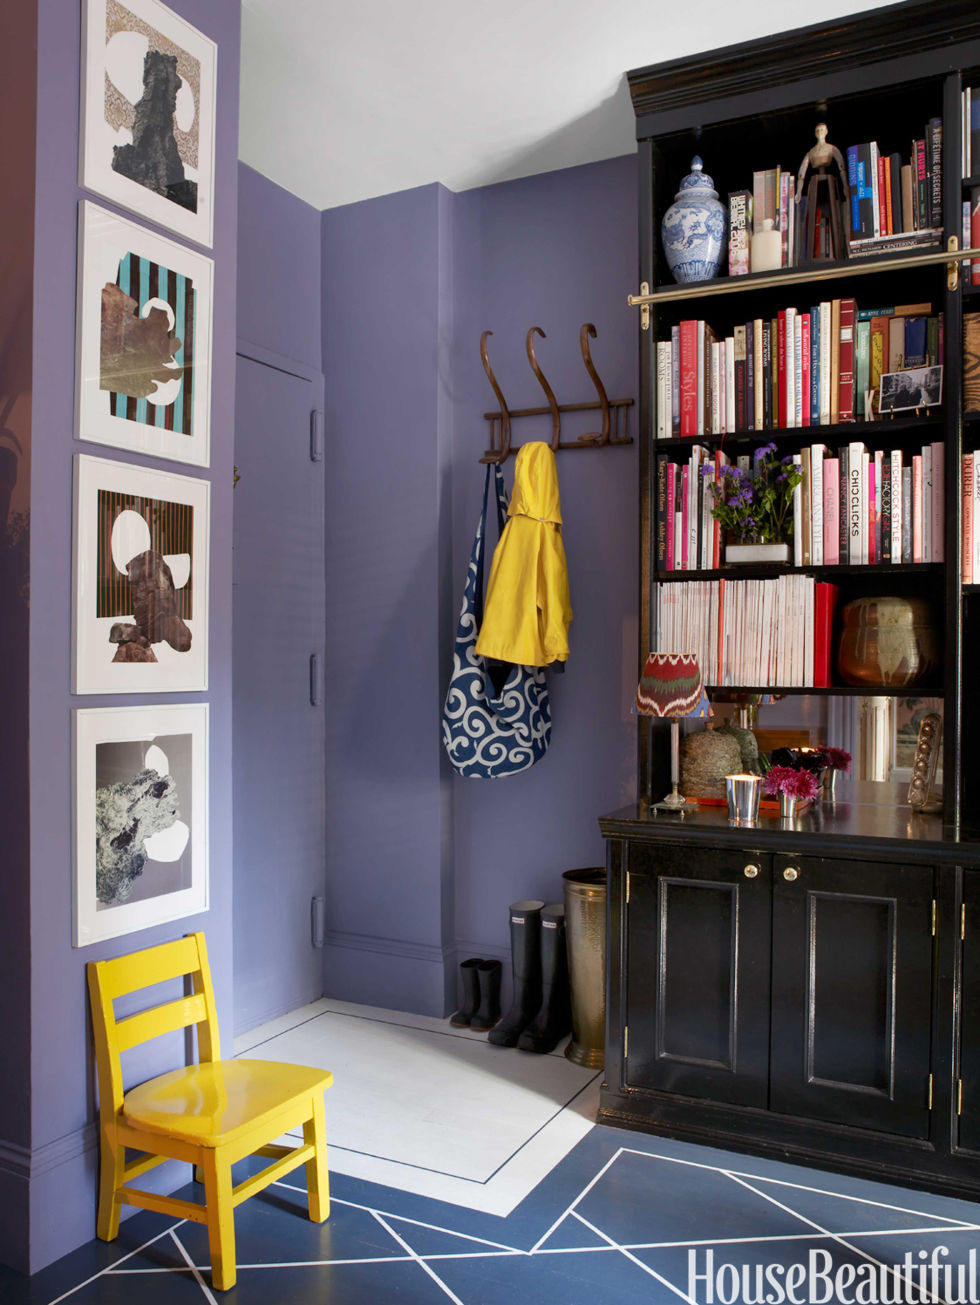 11 small space design ideas - how to make the most of a small space